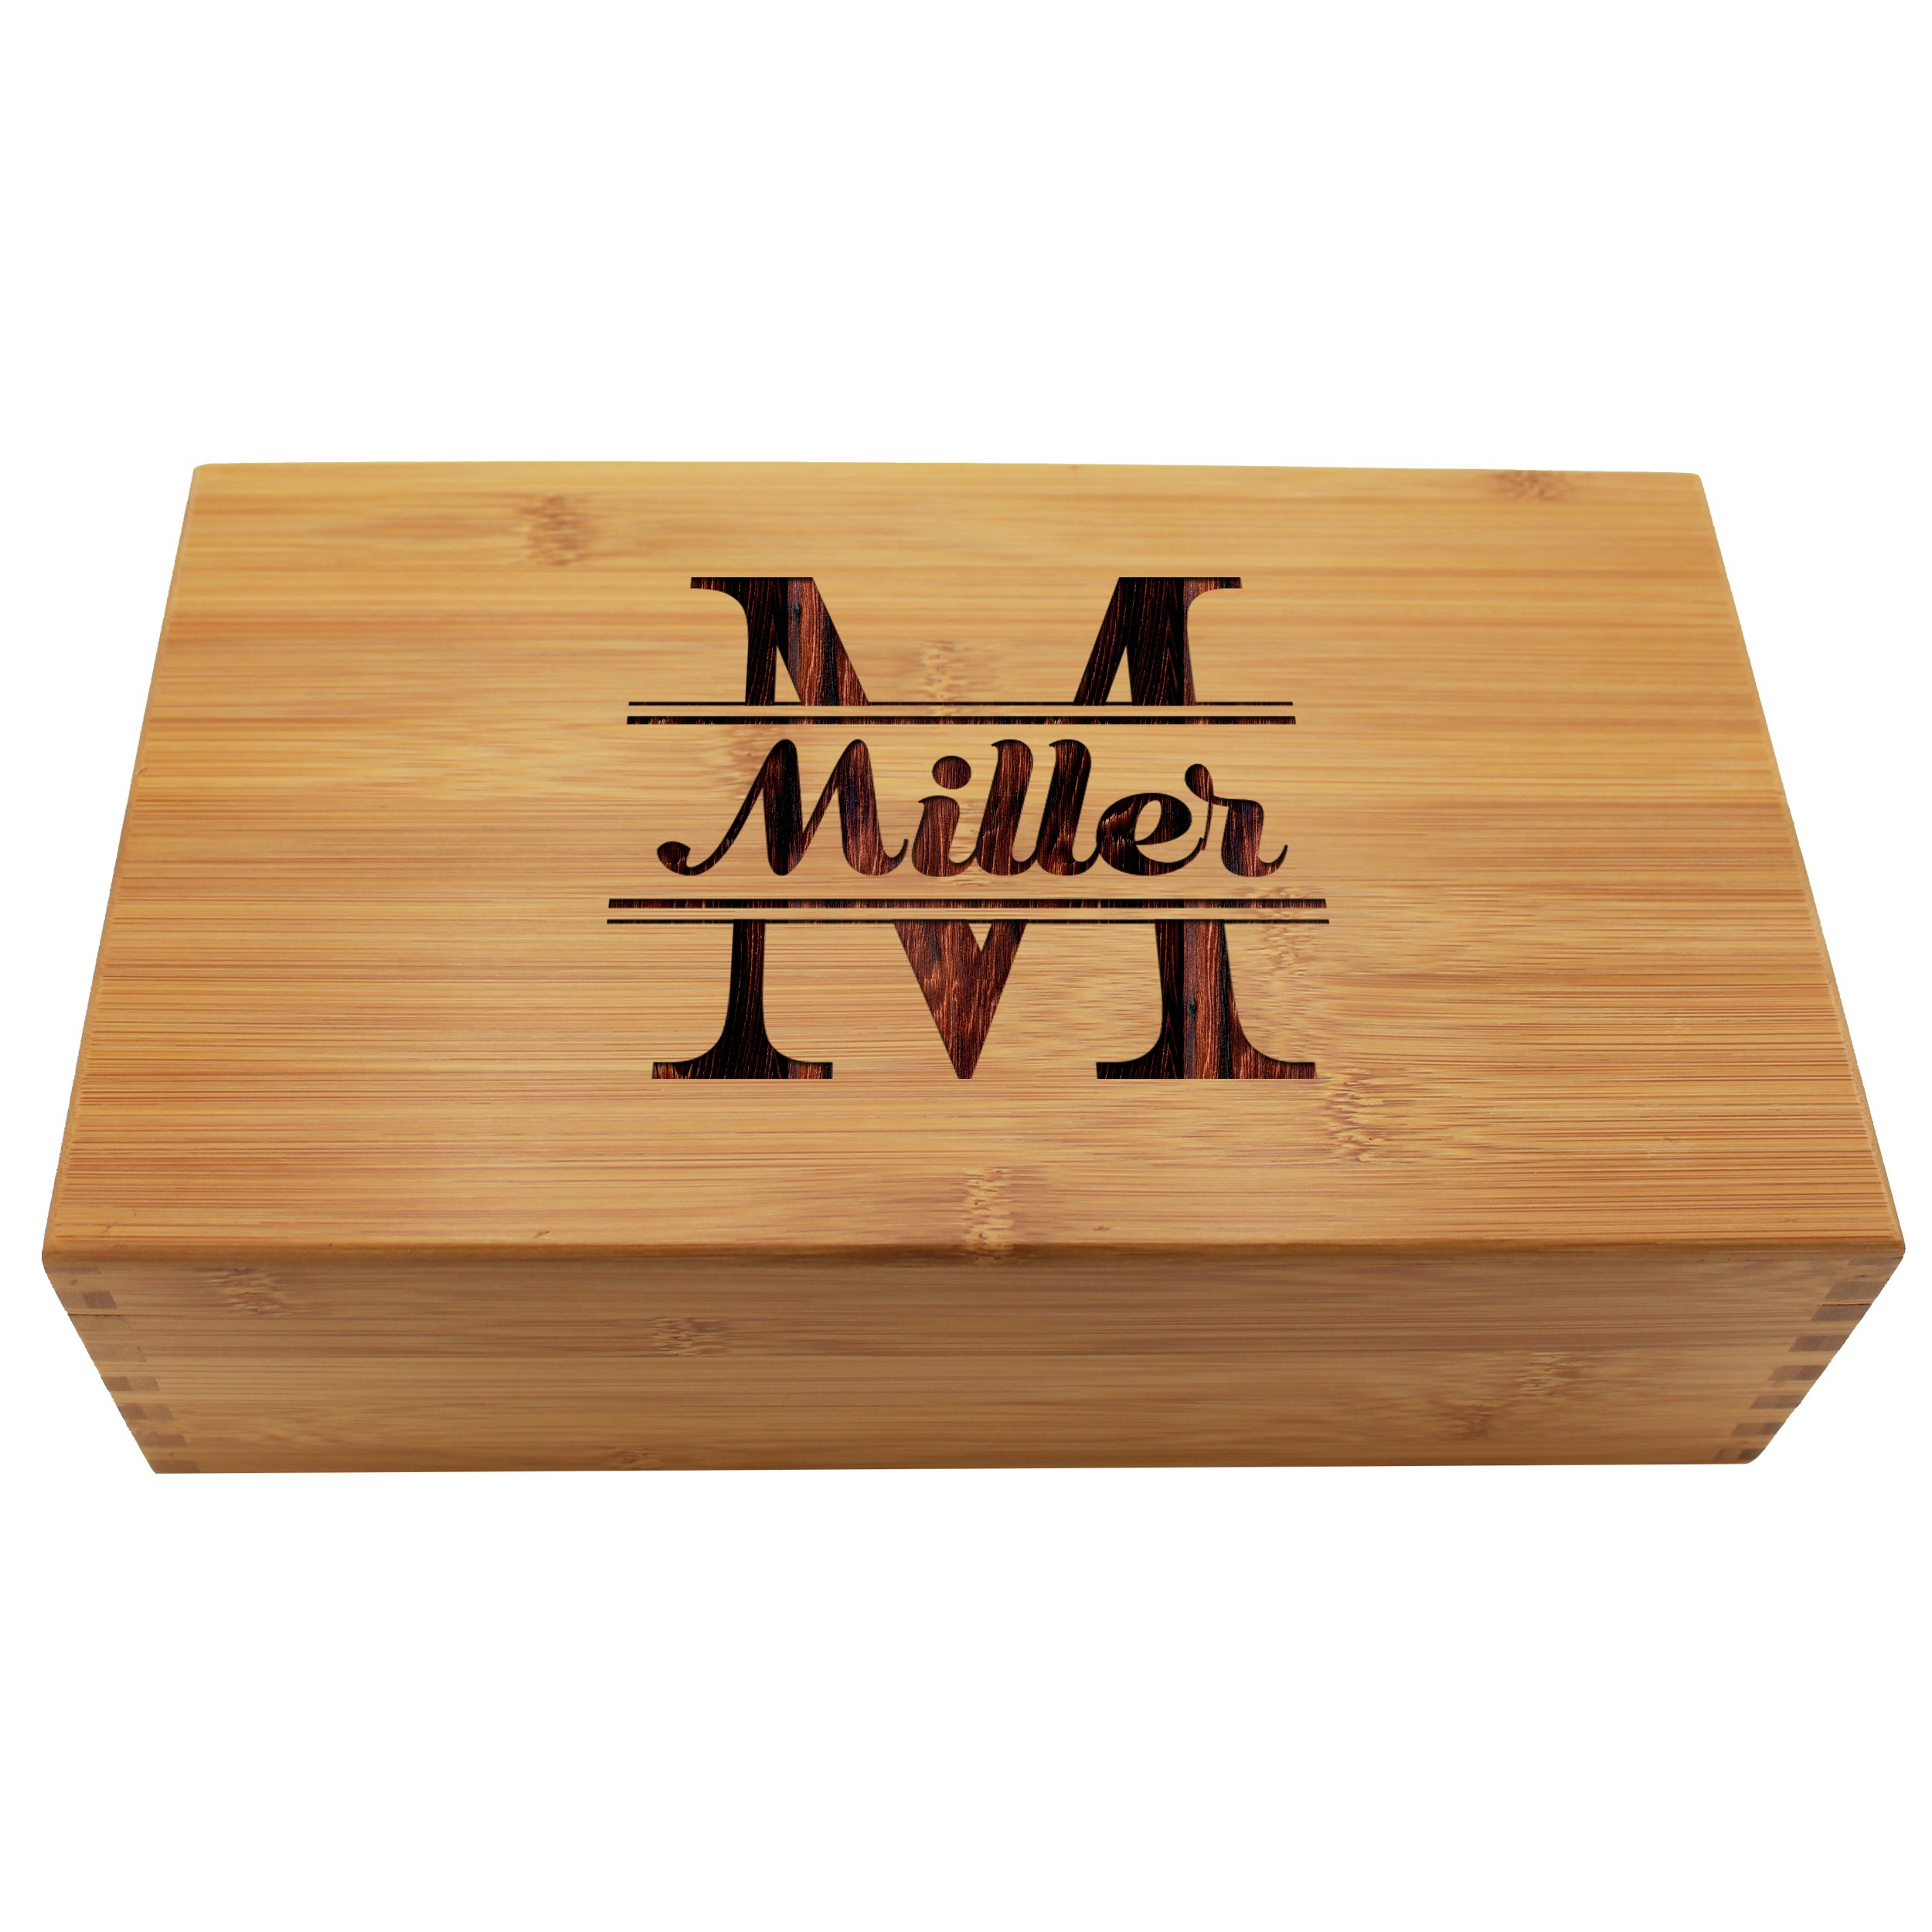 Custom Personalized Wood Tea Box Caddy Organizer - Engraved Bamboo Tea Storage Holder - Monogrammed for Free by The Wedding Party Store (Image #2)